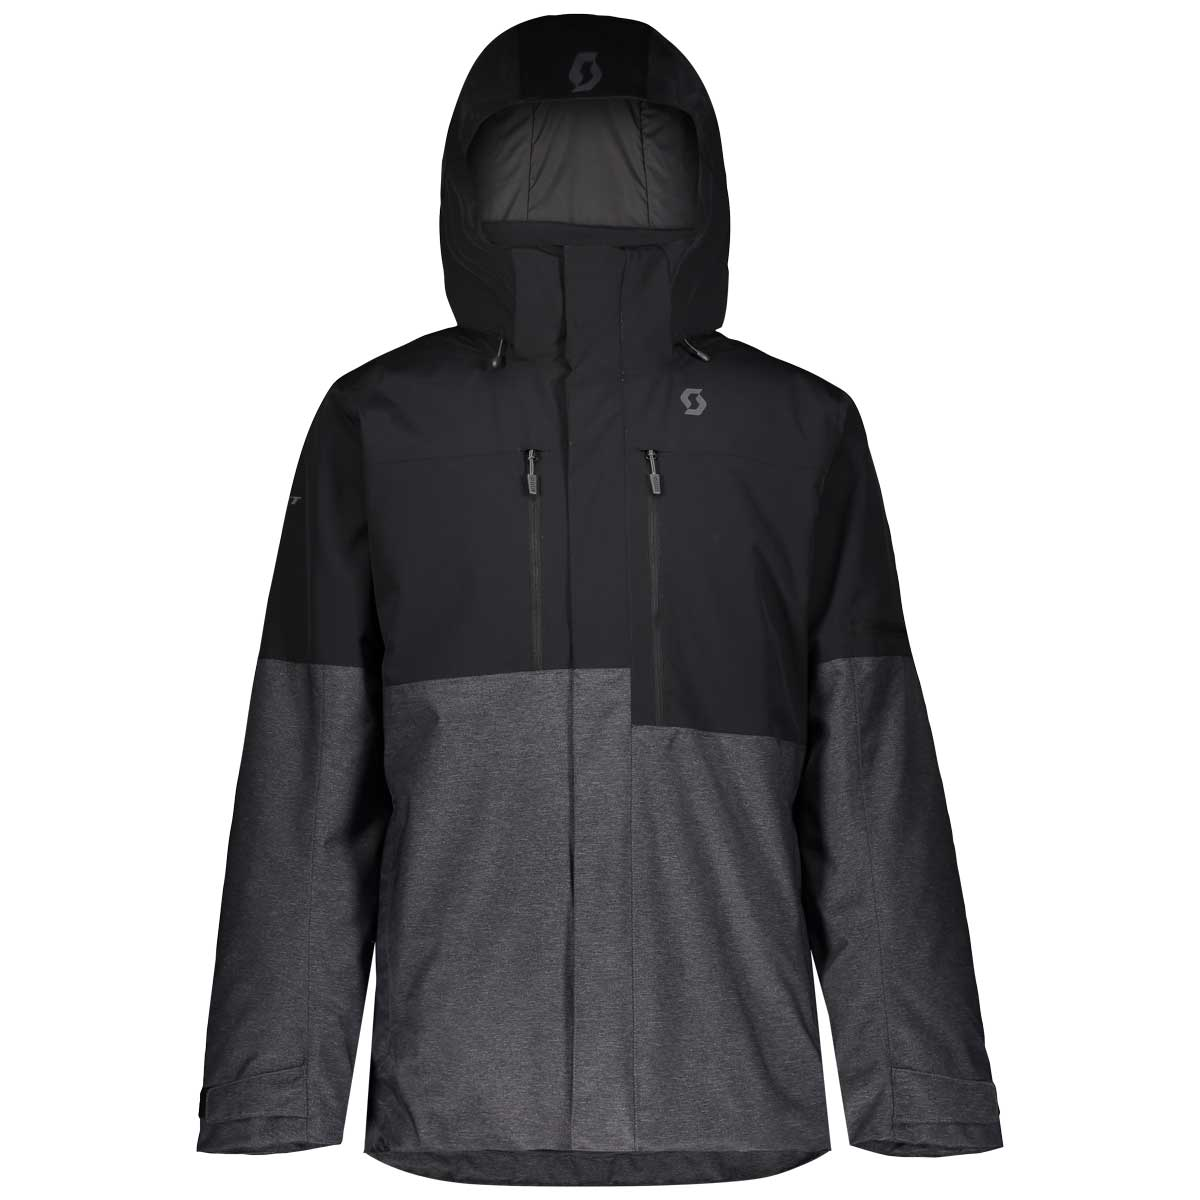 Scott men's Ultimate Dryo 10 jacket in Black and Dark Grey Melange